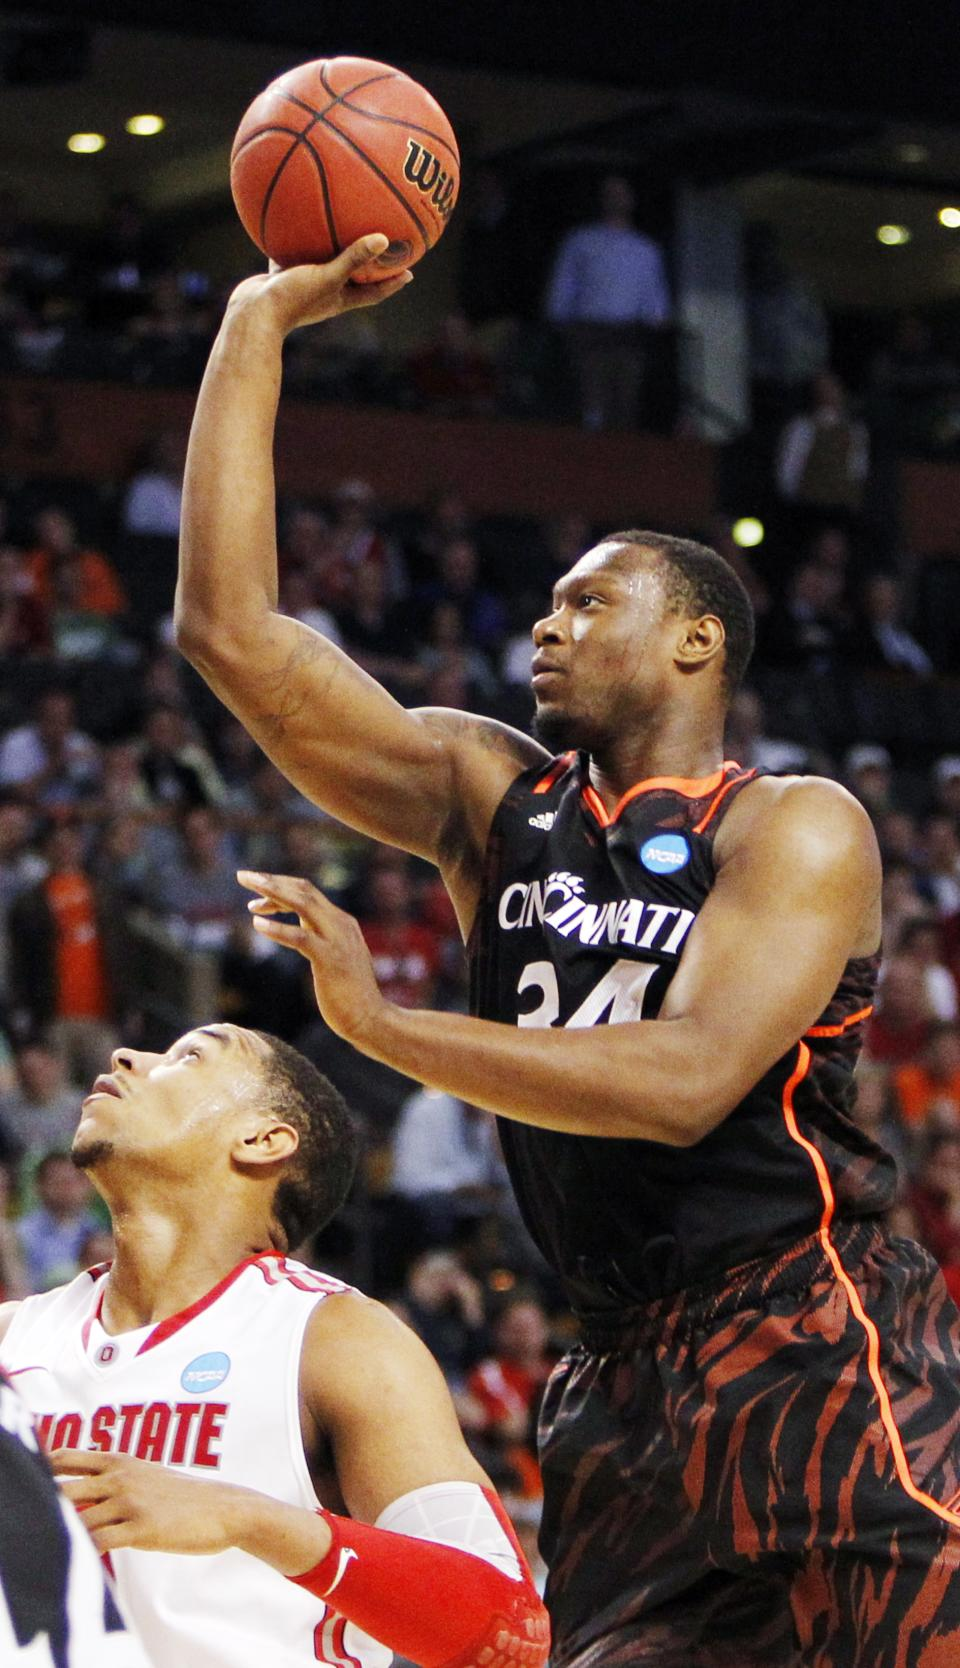 Cincinnati forward Yancy Gates (34) shoots over Ohio State forward Jared Sullinger, below, in the second half of an East Regional semifinal game in the NCAA men's college basketball tournament, Thursday, March 22, 2012, in Boston. (AP Photo/Michael Dwyer)